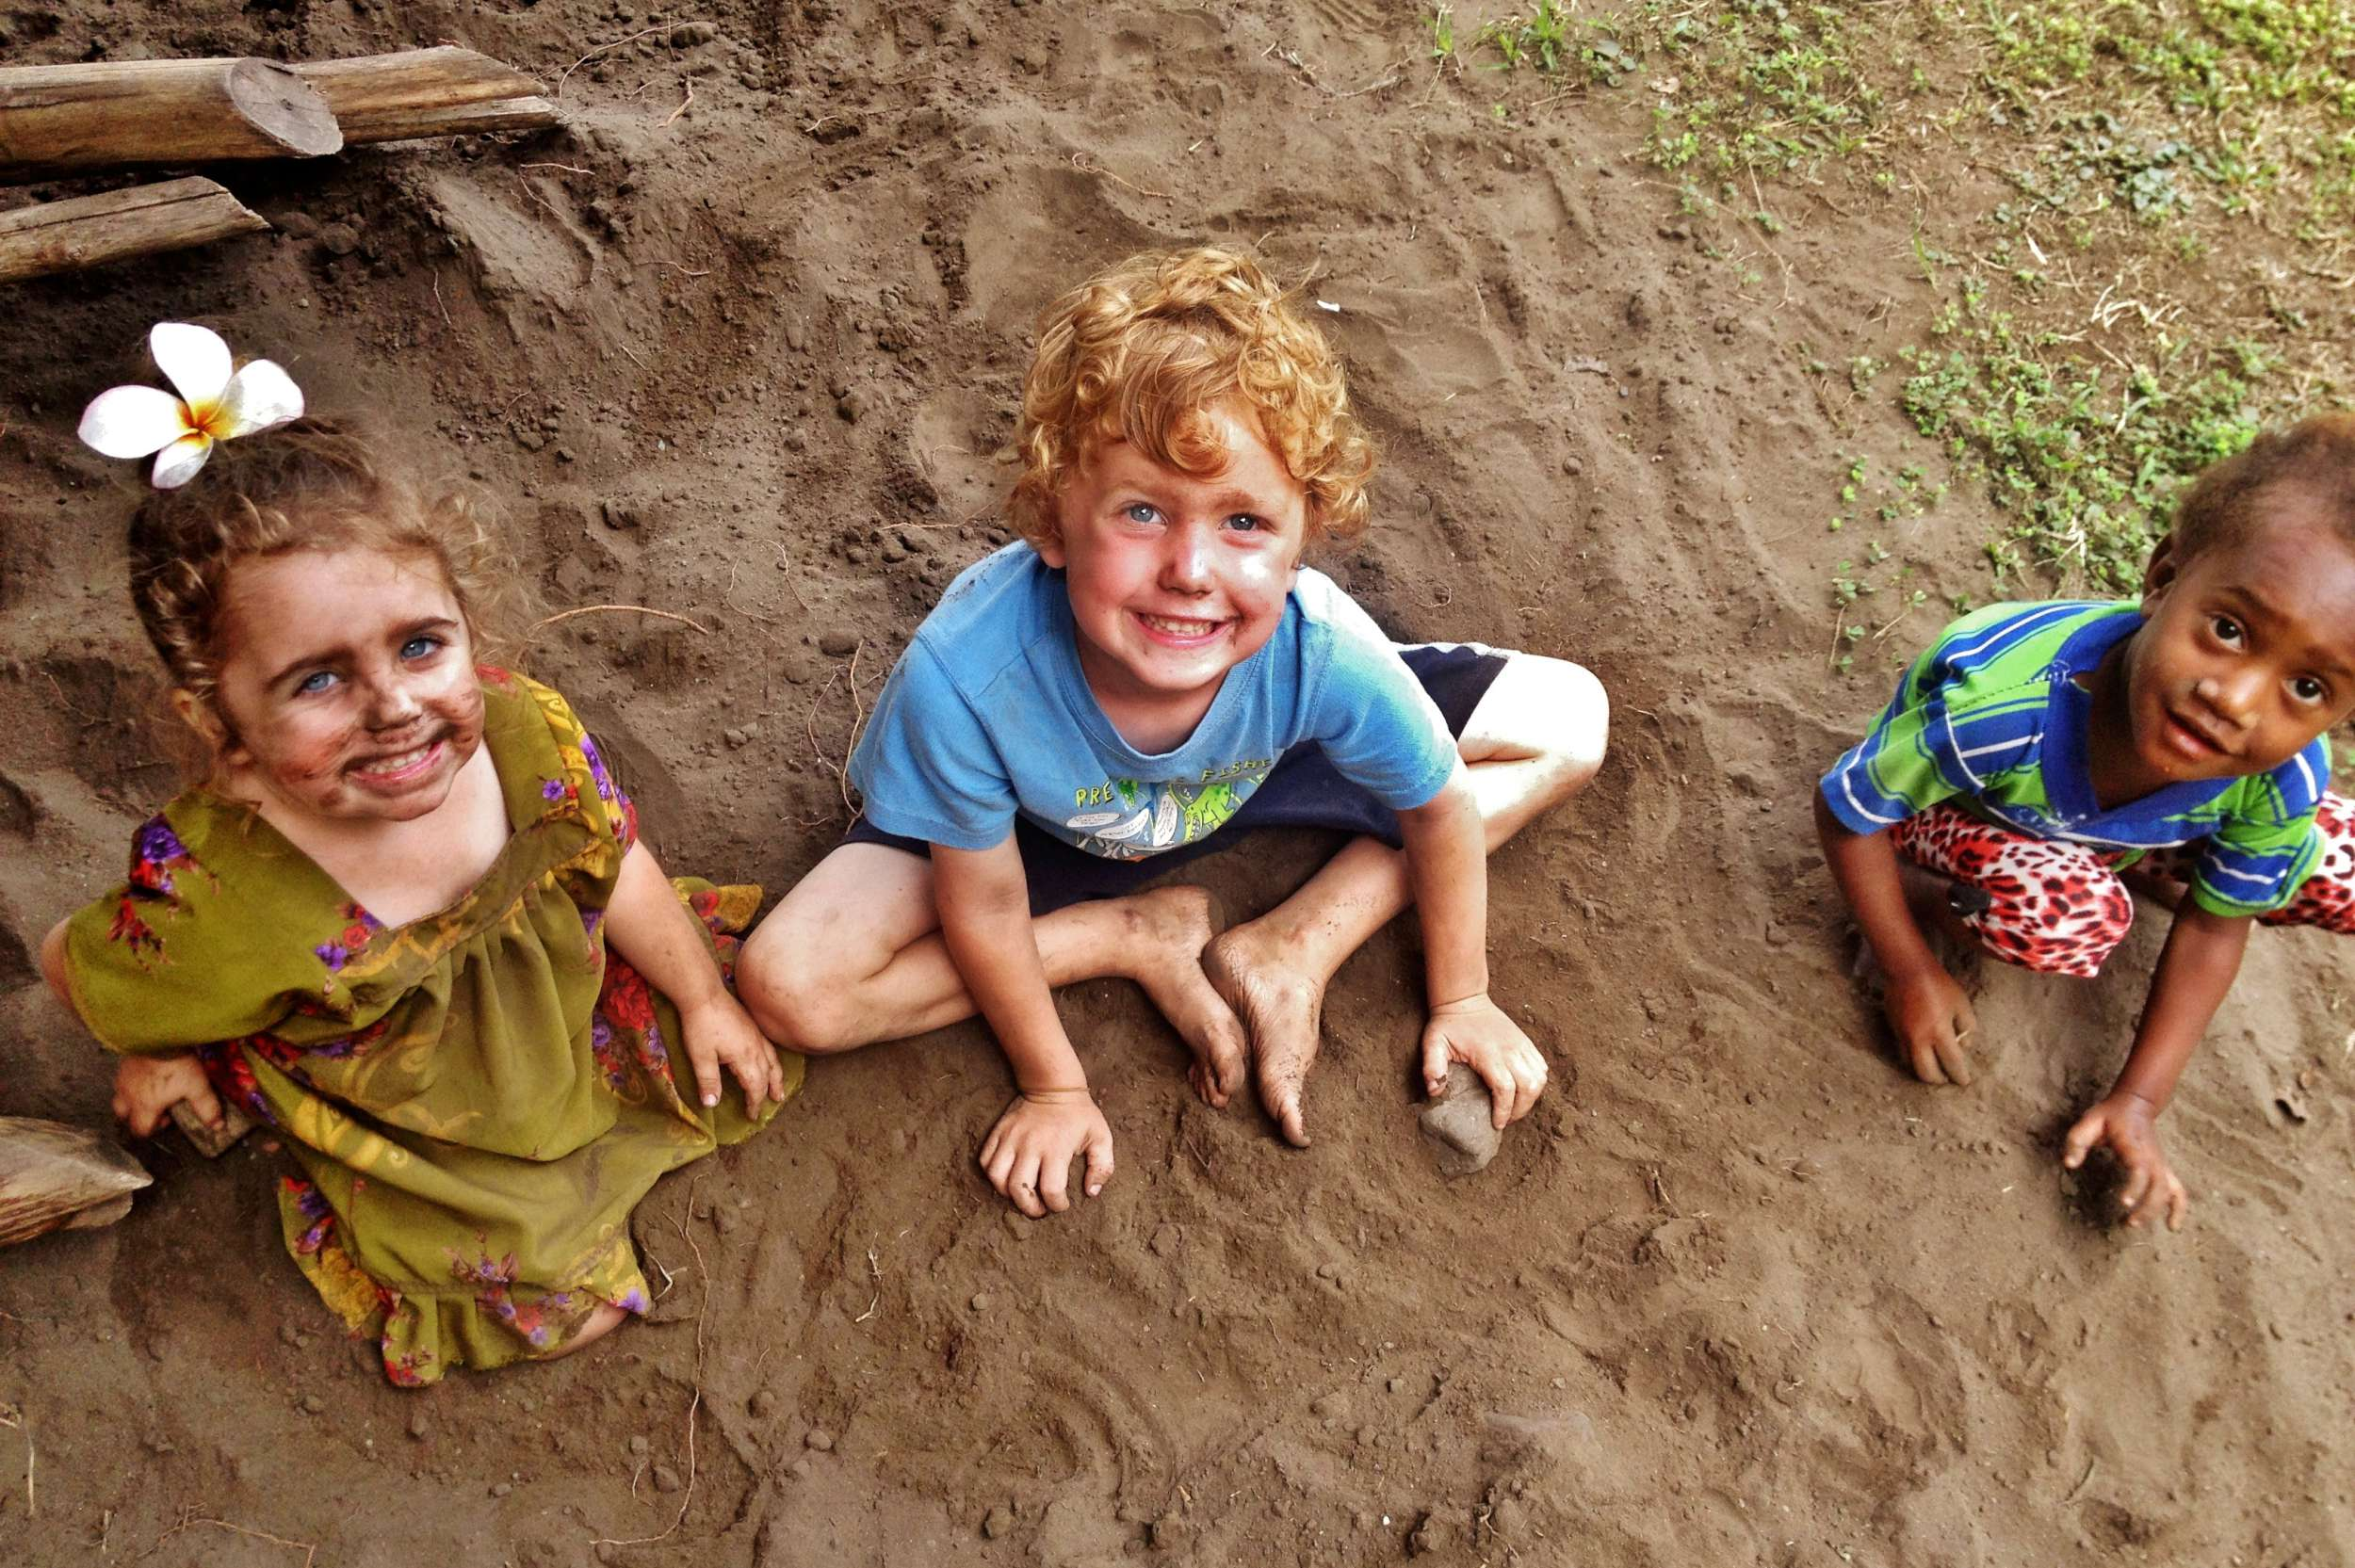 The kids took great delight in getting dirty whenever possible.